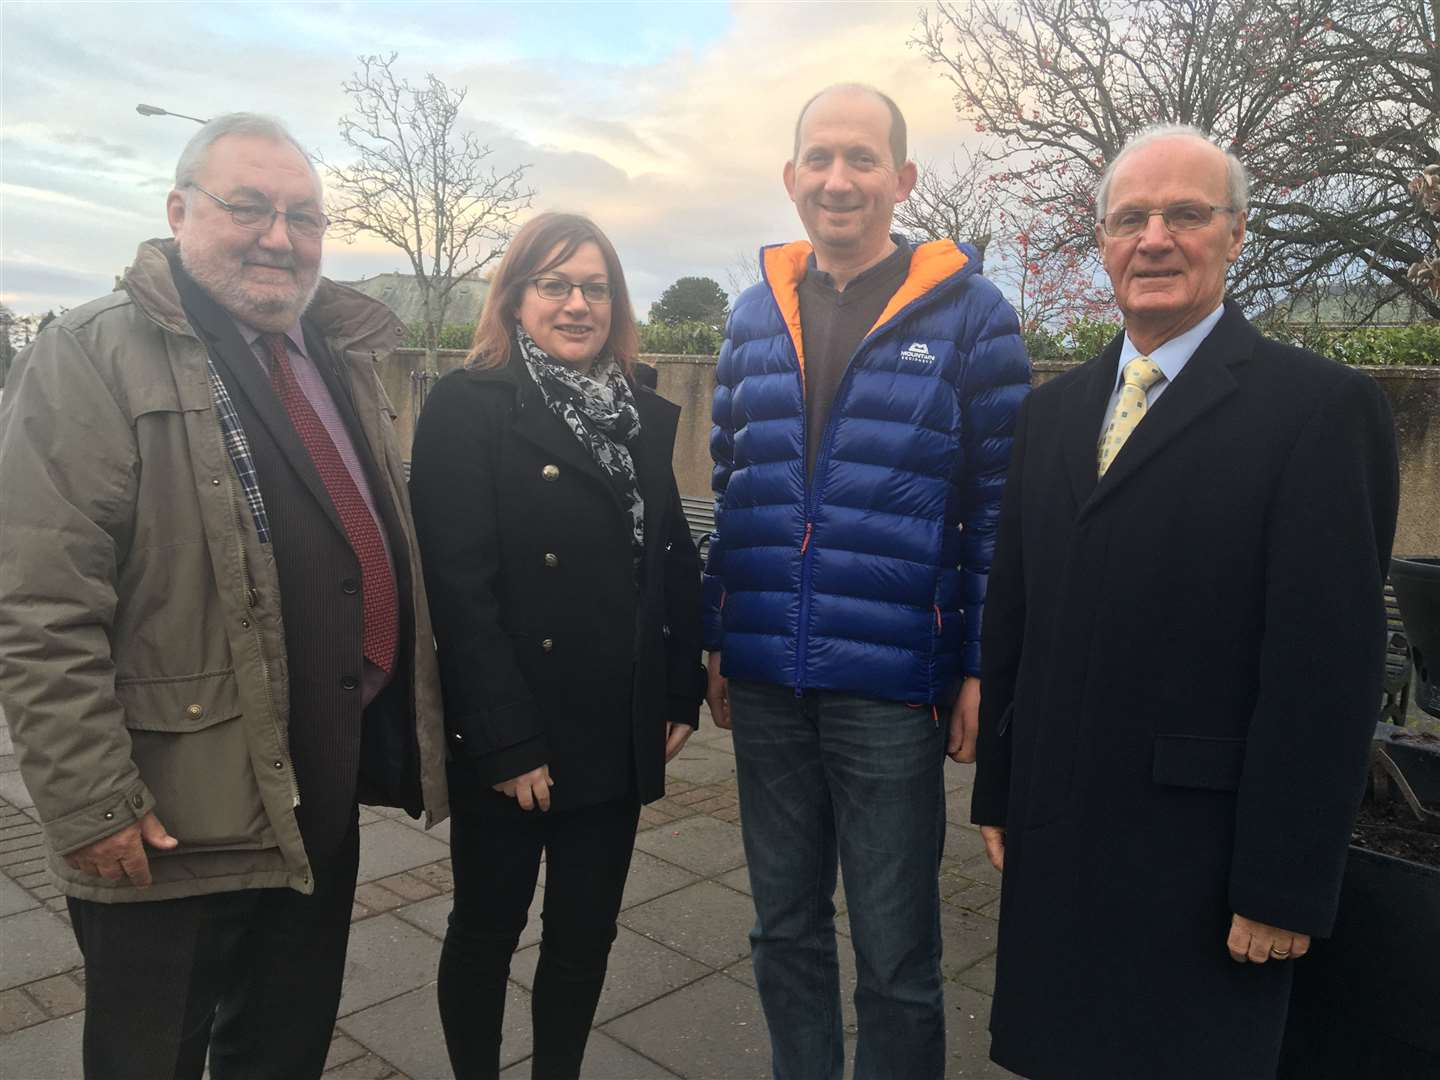 Councillor Tom Heggie, BID manager Janis Maclean, Association of Nairn Businesses chairman Gordon Chisholm and Bill Wilson of Nairn Rotary Club.